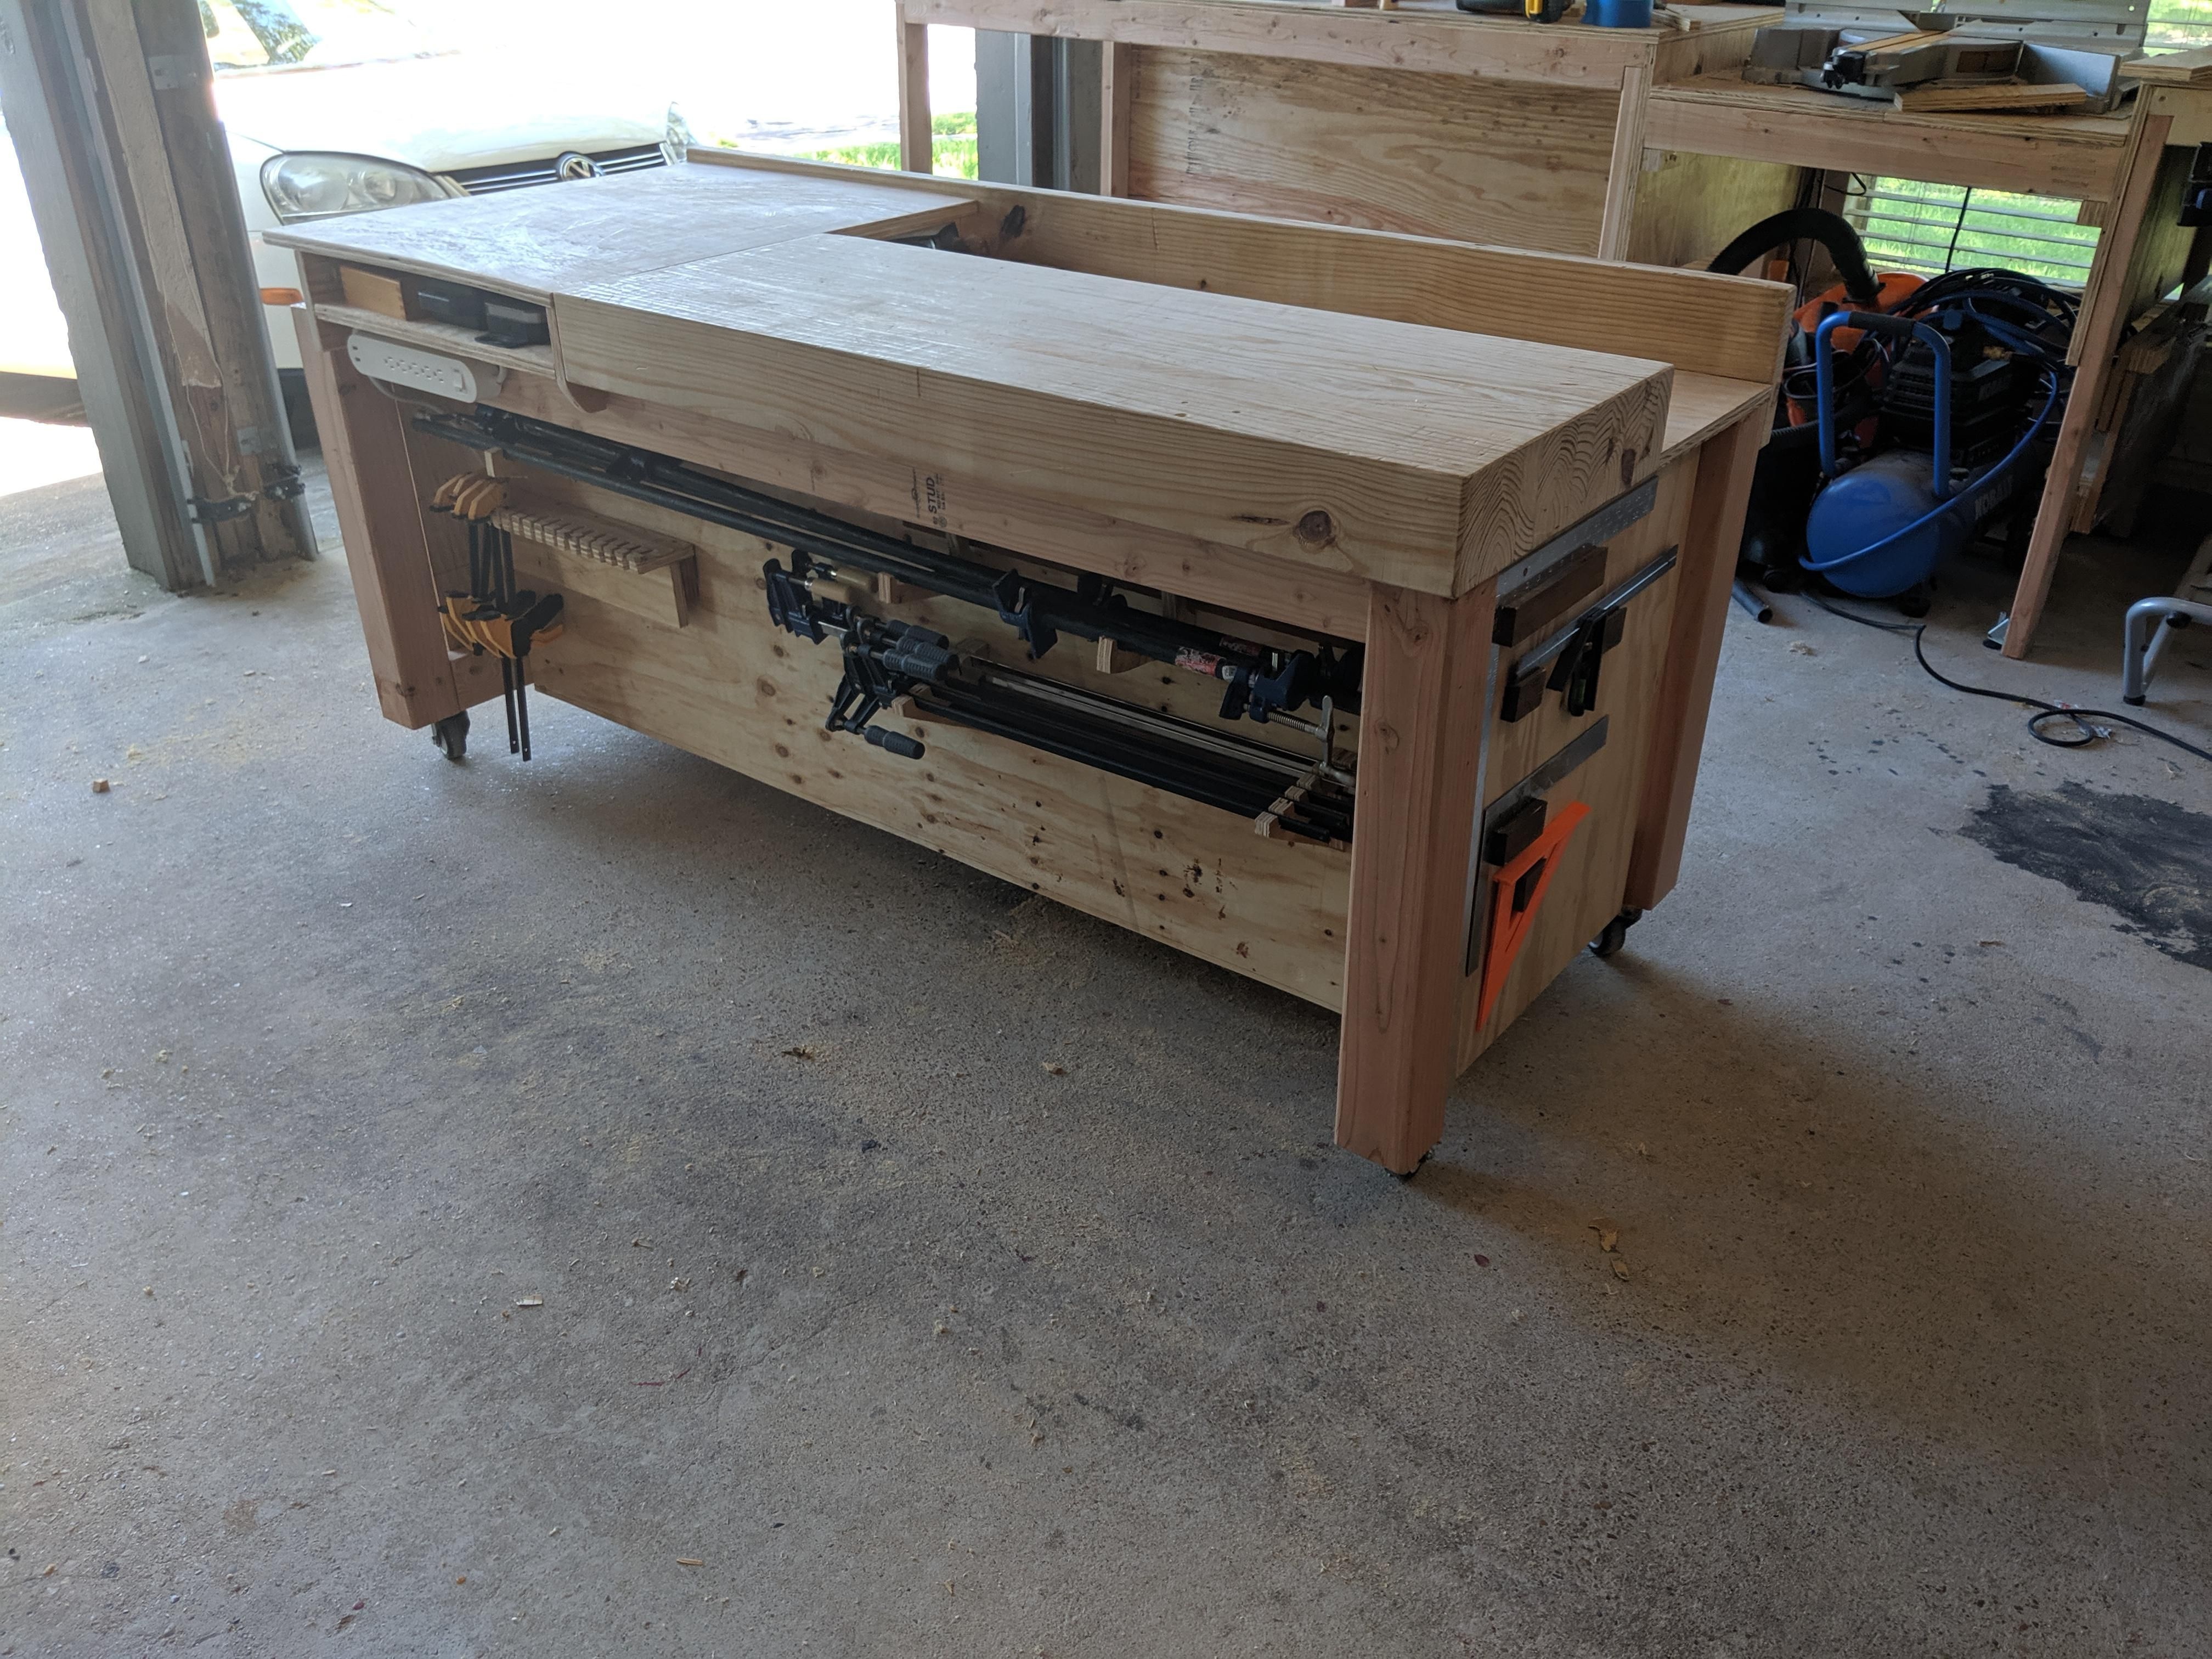 Workbench phase 1 complete, build album in comments